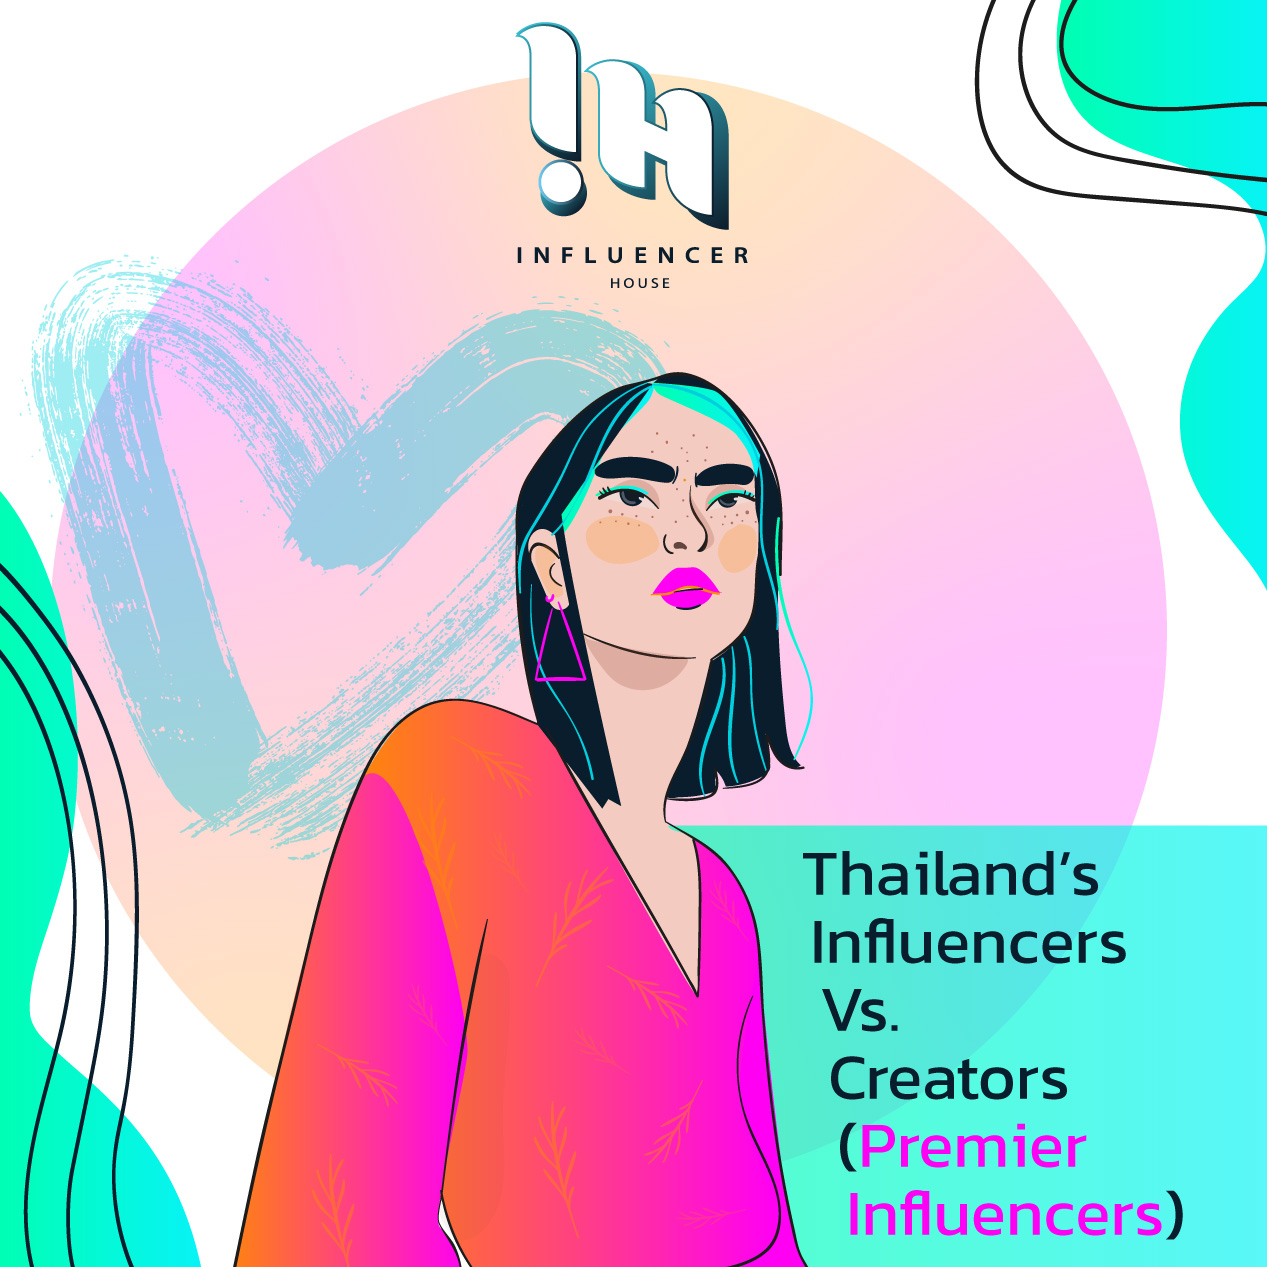 Thailand influencers